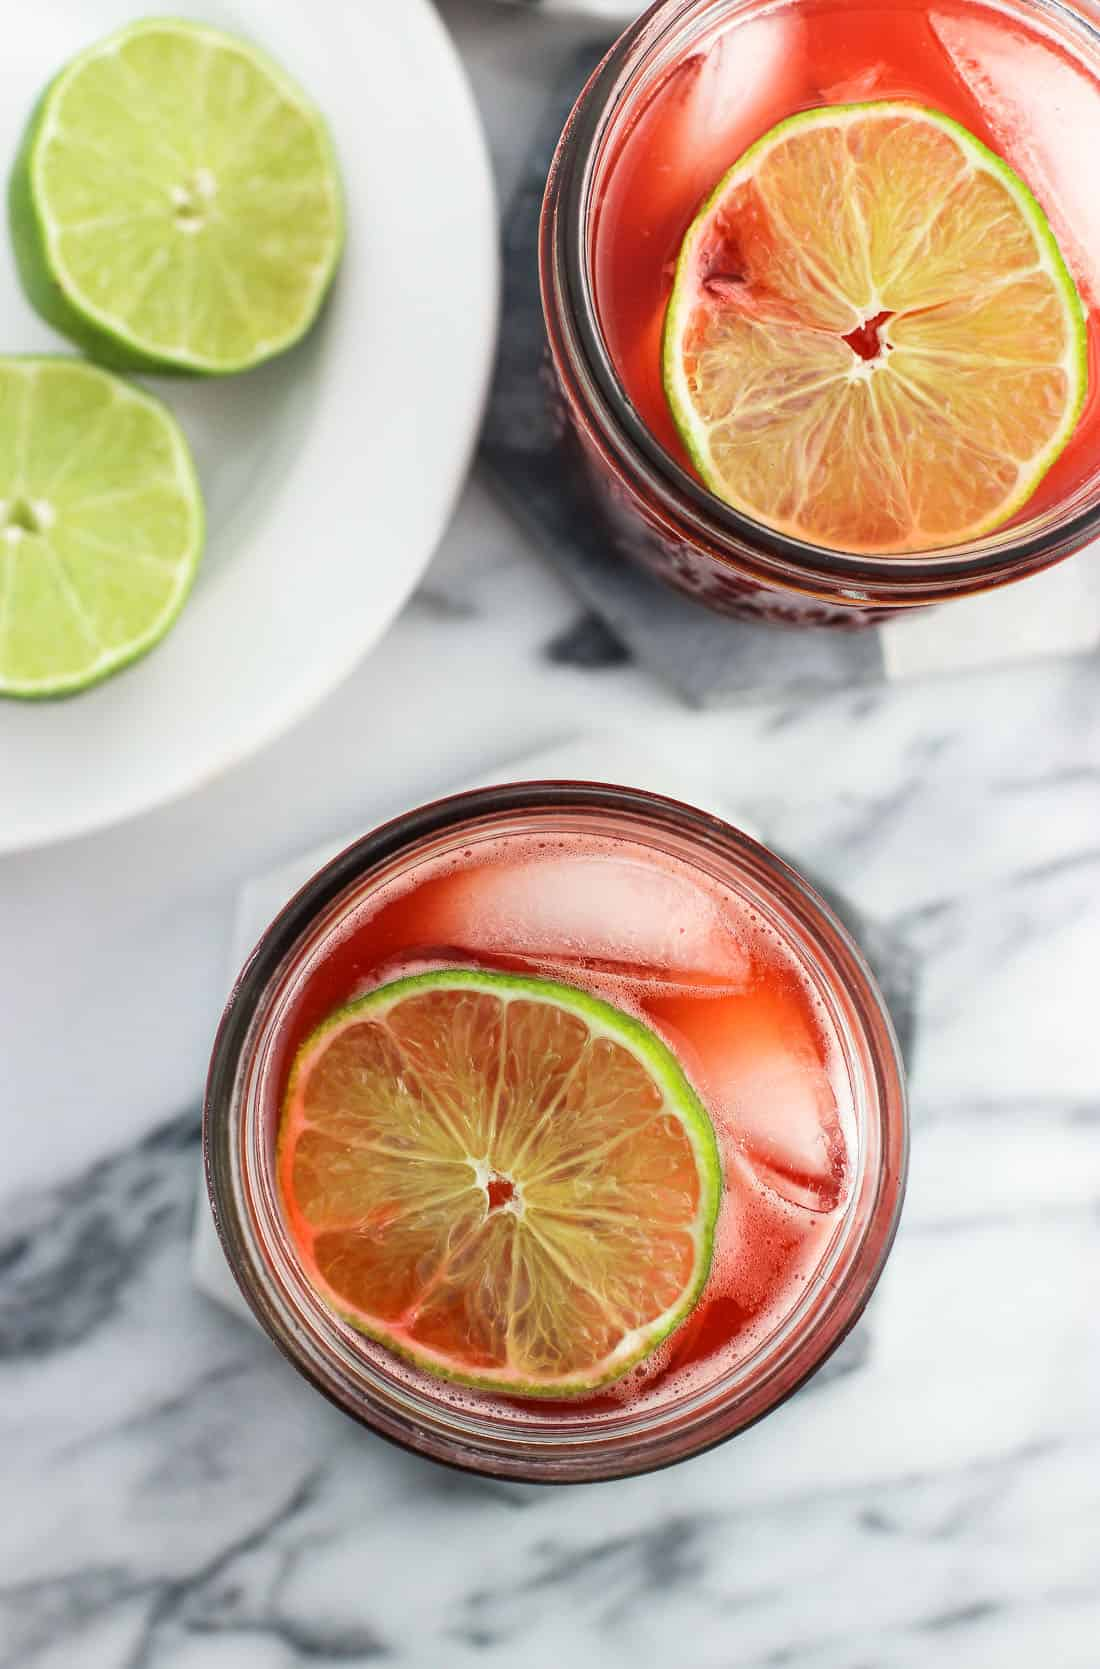 Strawberry drinking vinegar with balsamic is a fruity, refreshing way to drink apple cider vinegar without any 'burn'. Fresh strawberries, lime juice, coconut water, and apple cider and balsamic vinegars make up this naturally-sweetened drink.